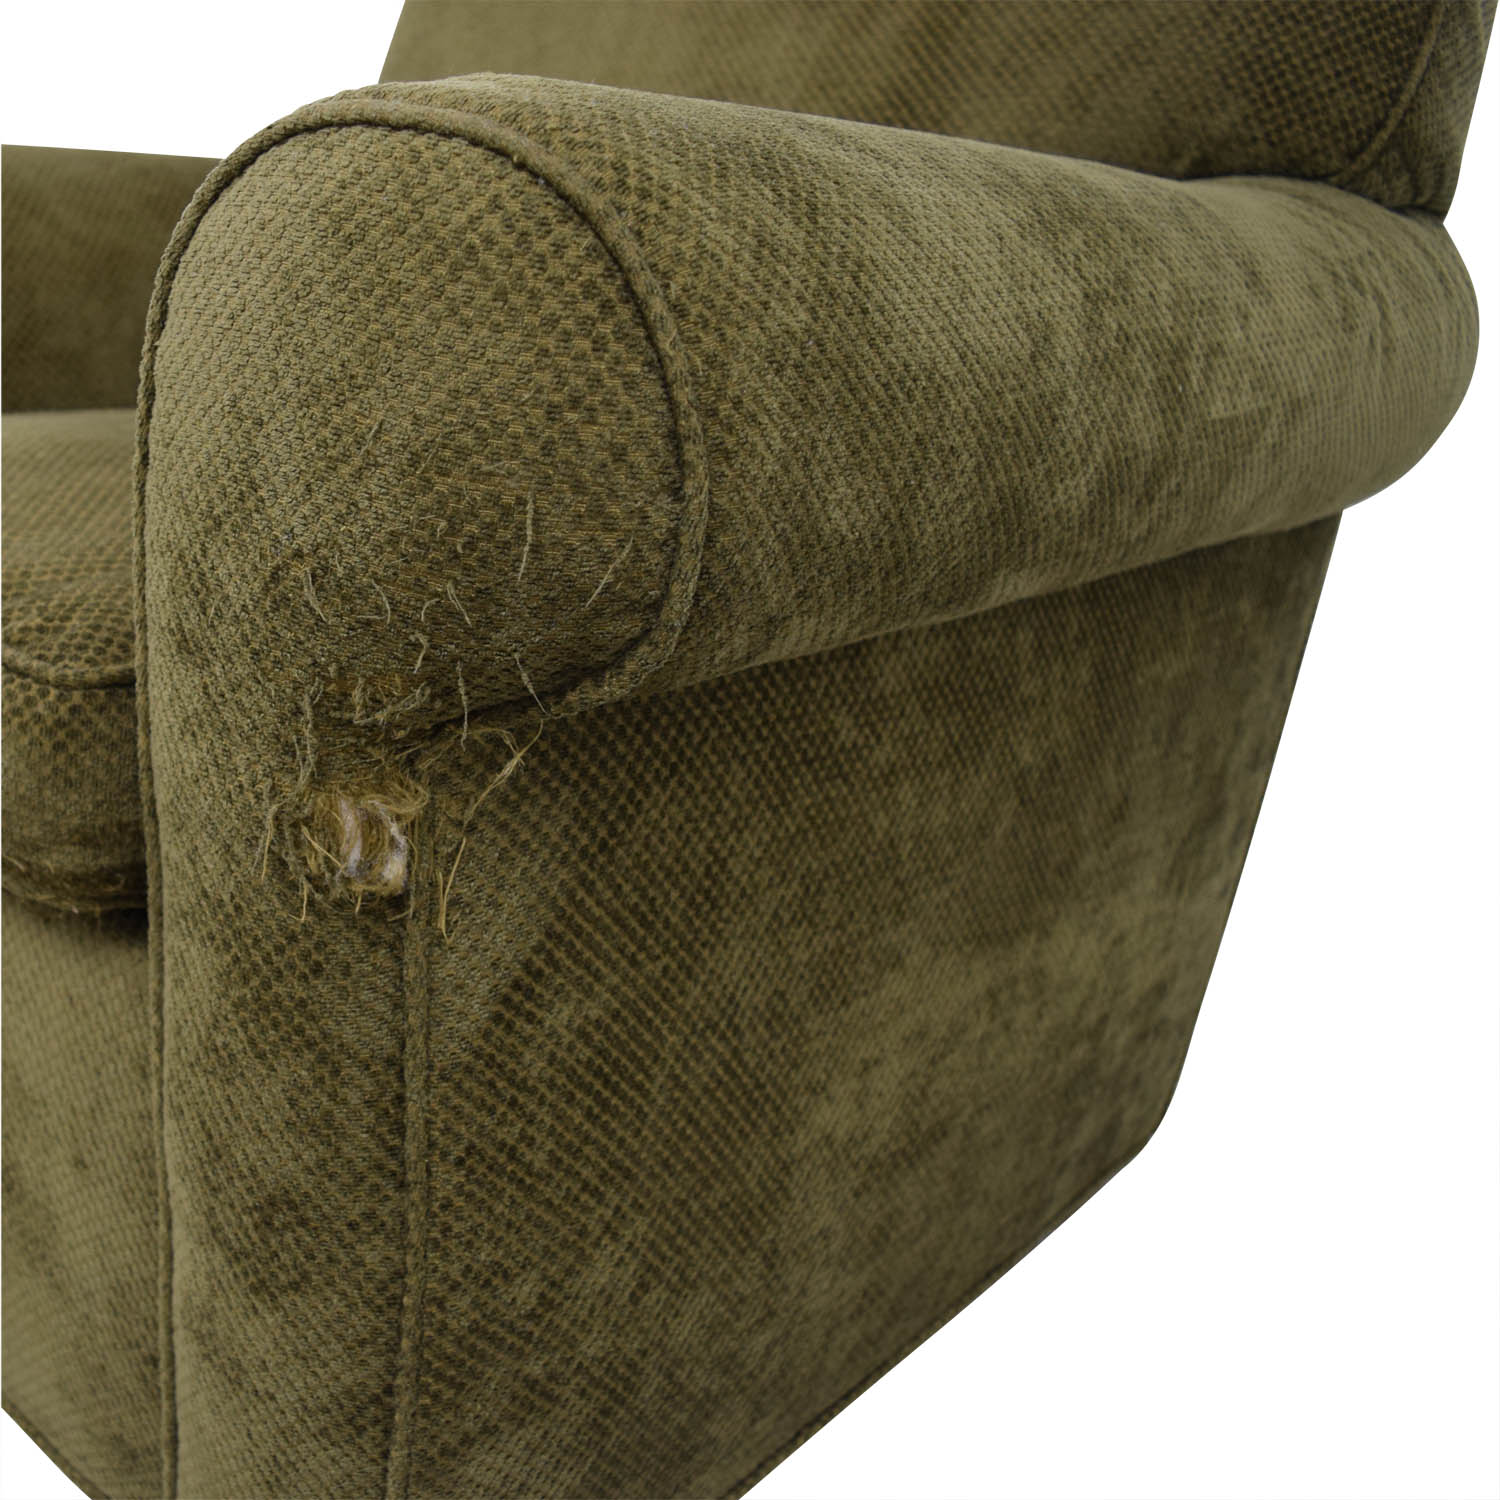 olive green accent chair yoga videos 90 off large chairs